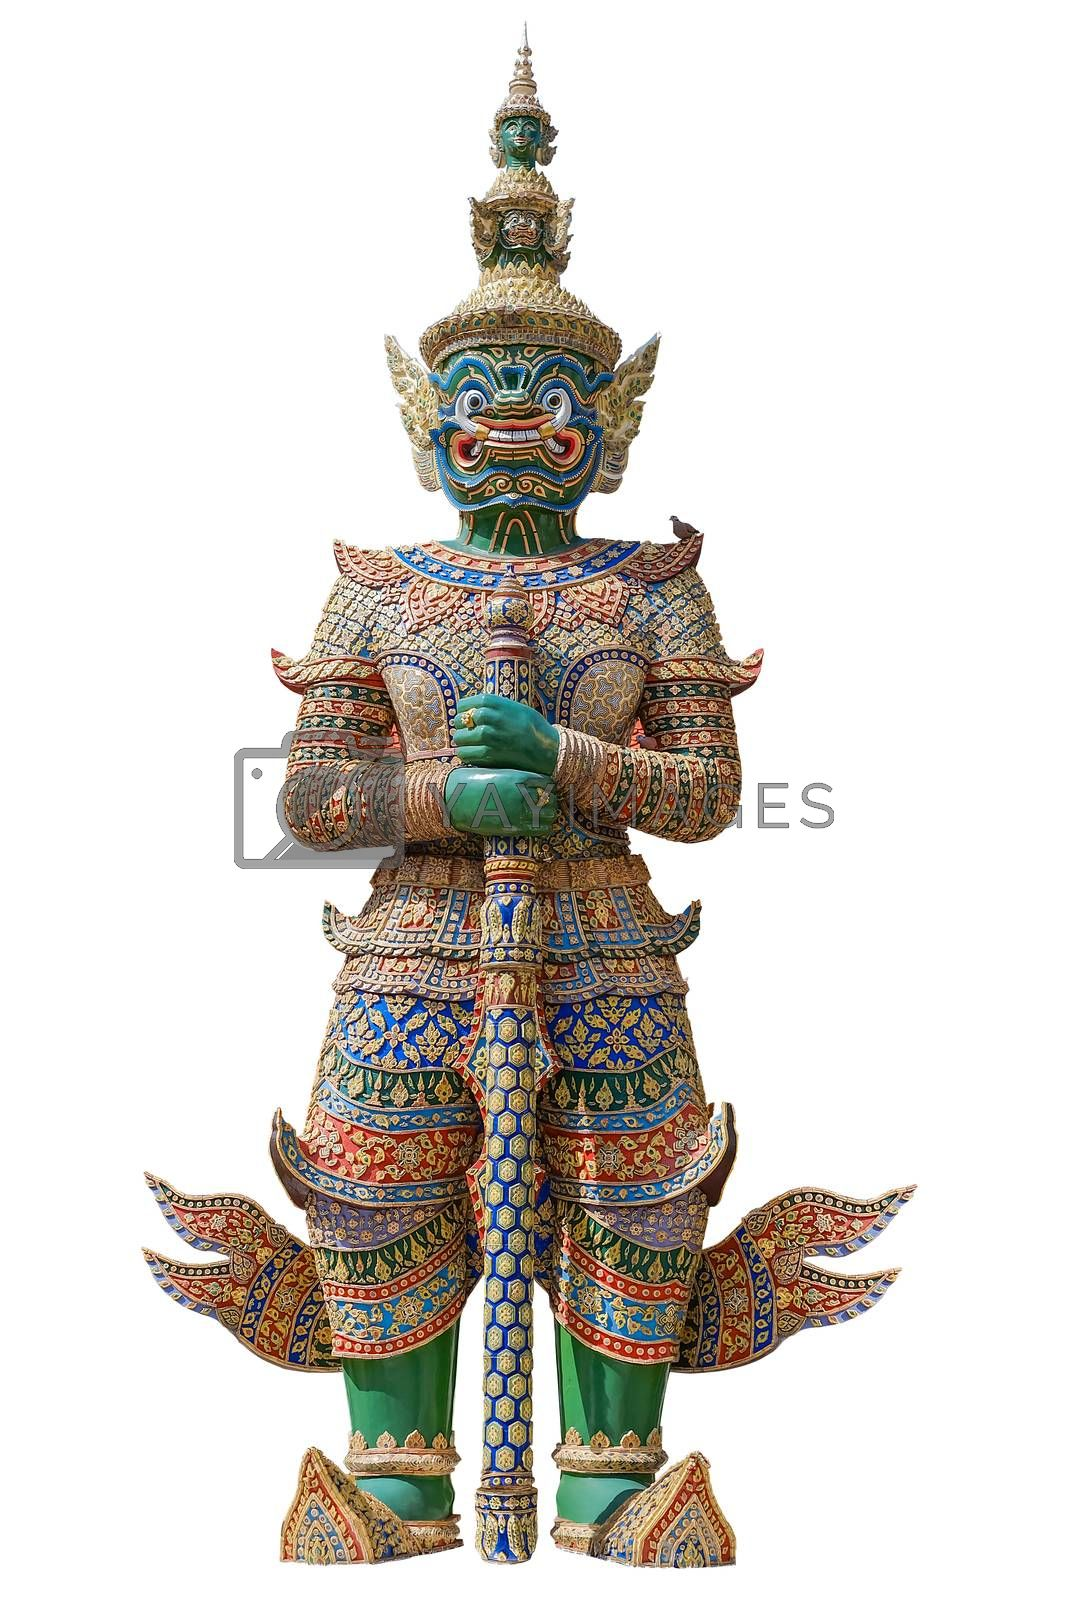 Green Giant guardian statue in Wat Phra Kaew Thailand on white backgroud with clipping path